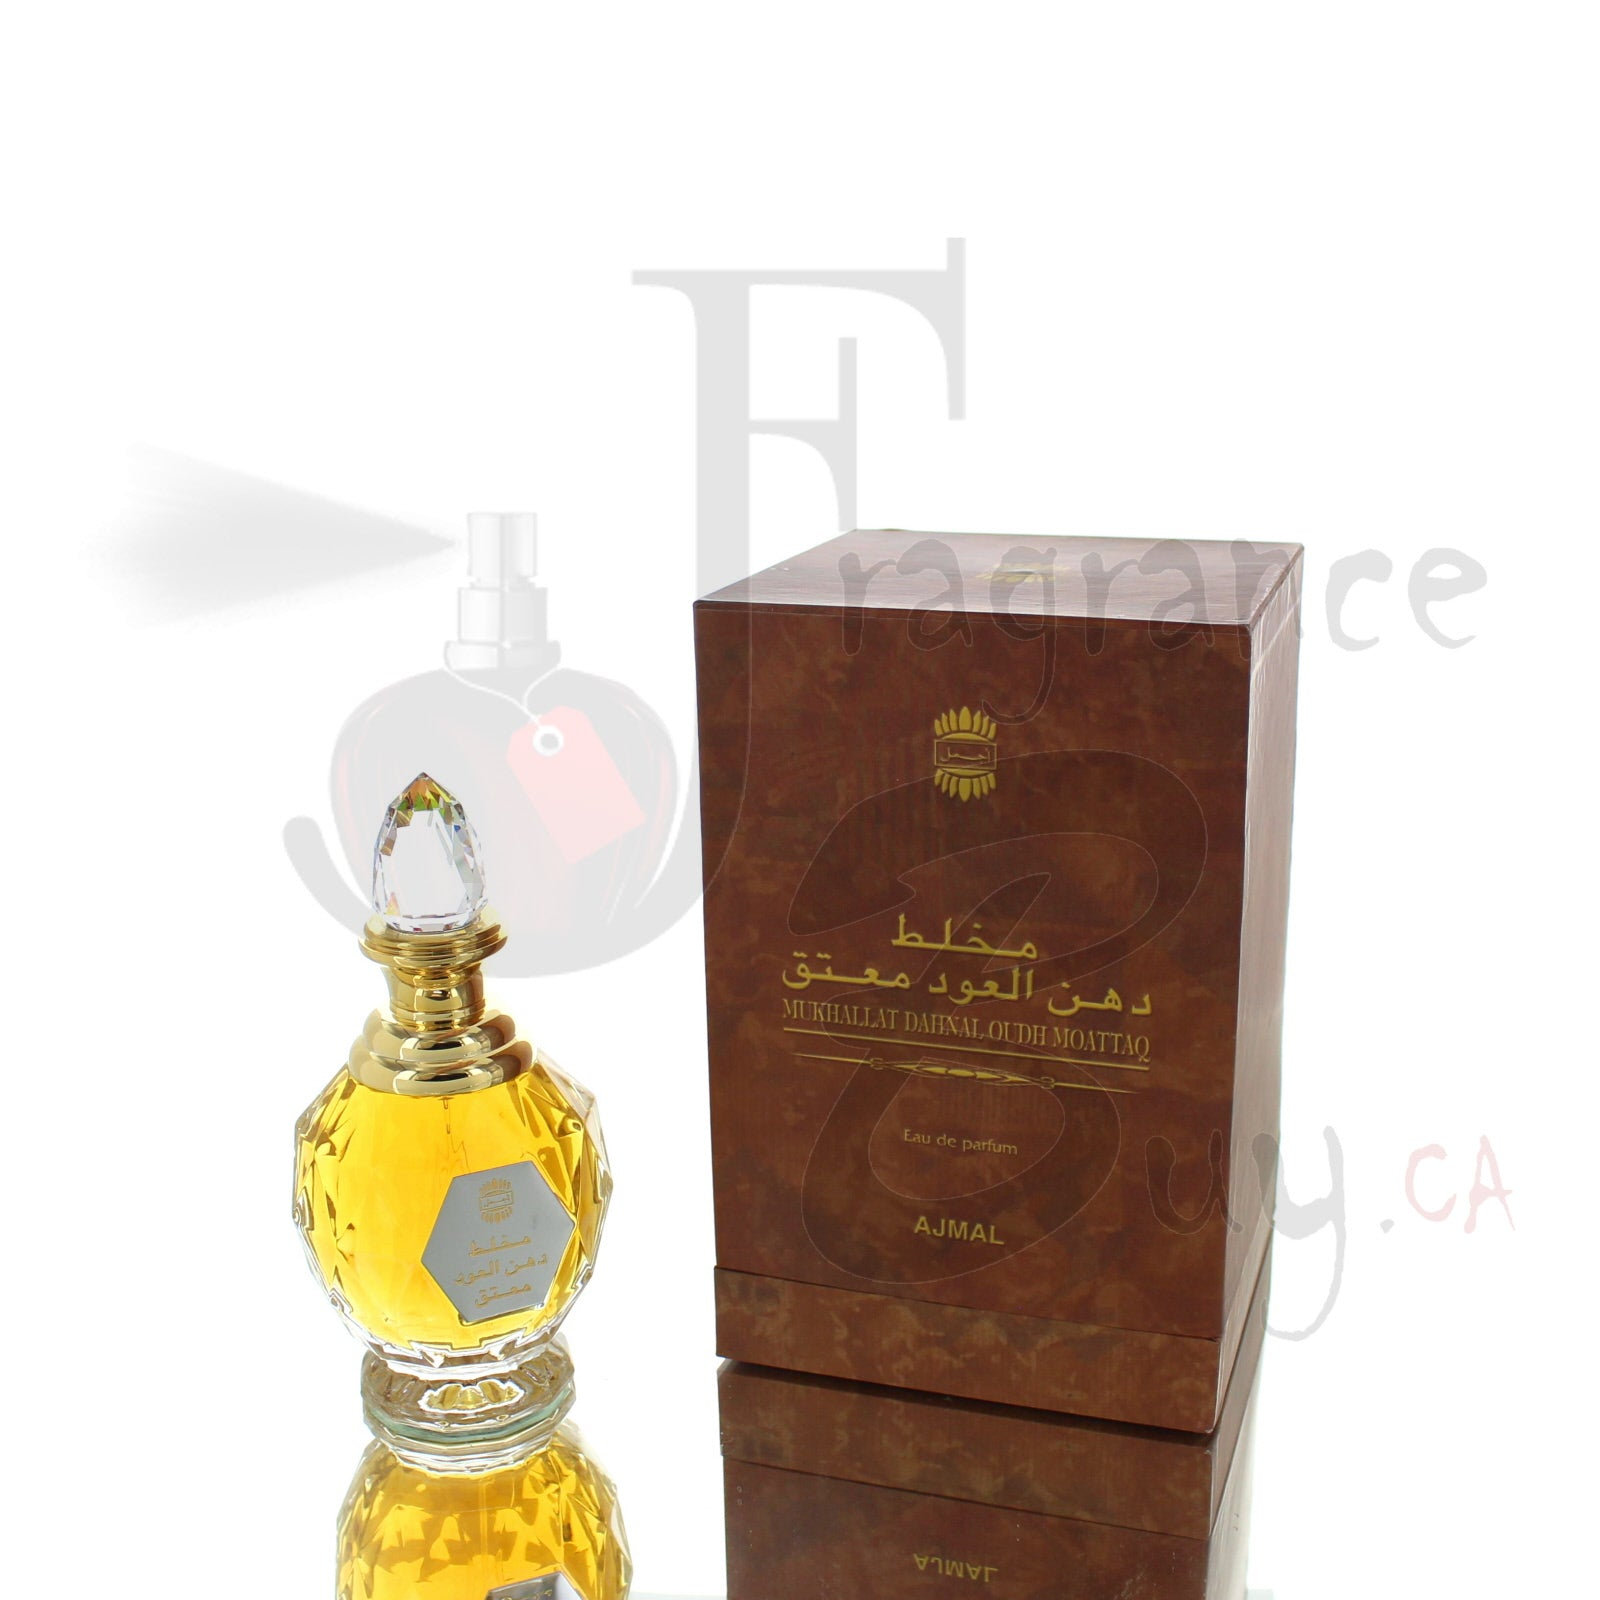 Ajmal Mukhallat Dahnal Oudh Moattaq For Man/Woman